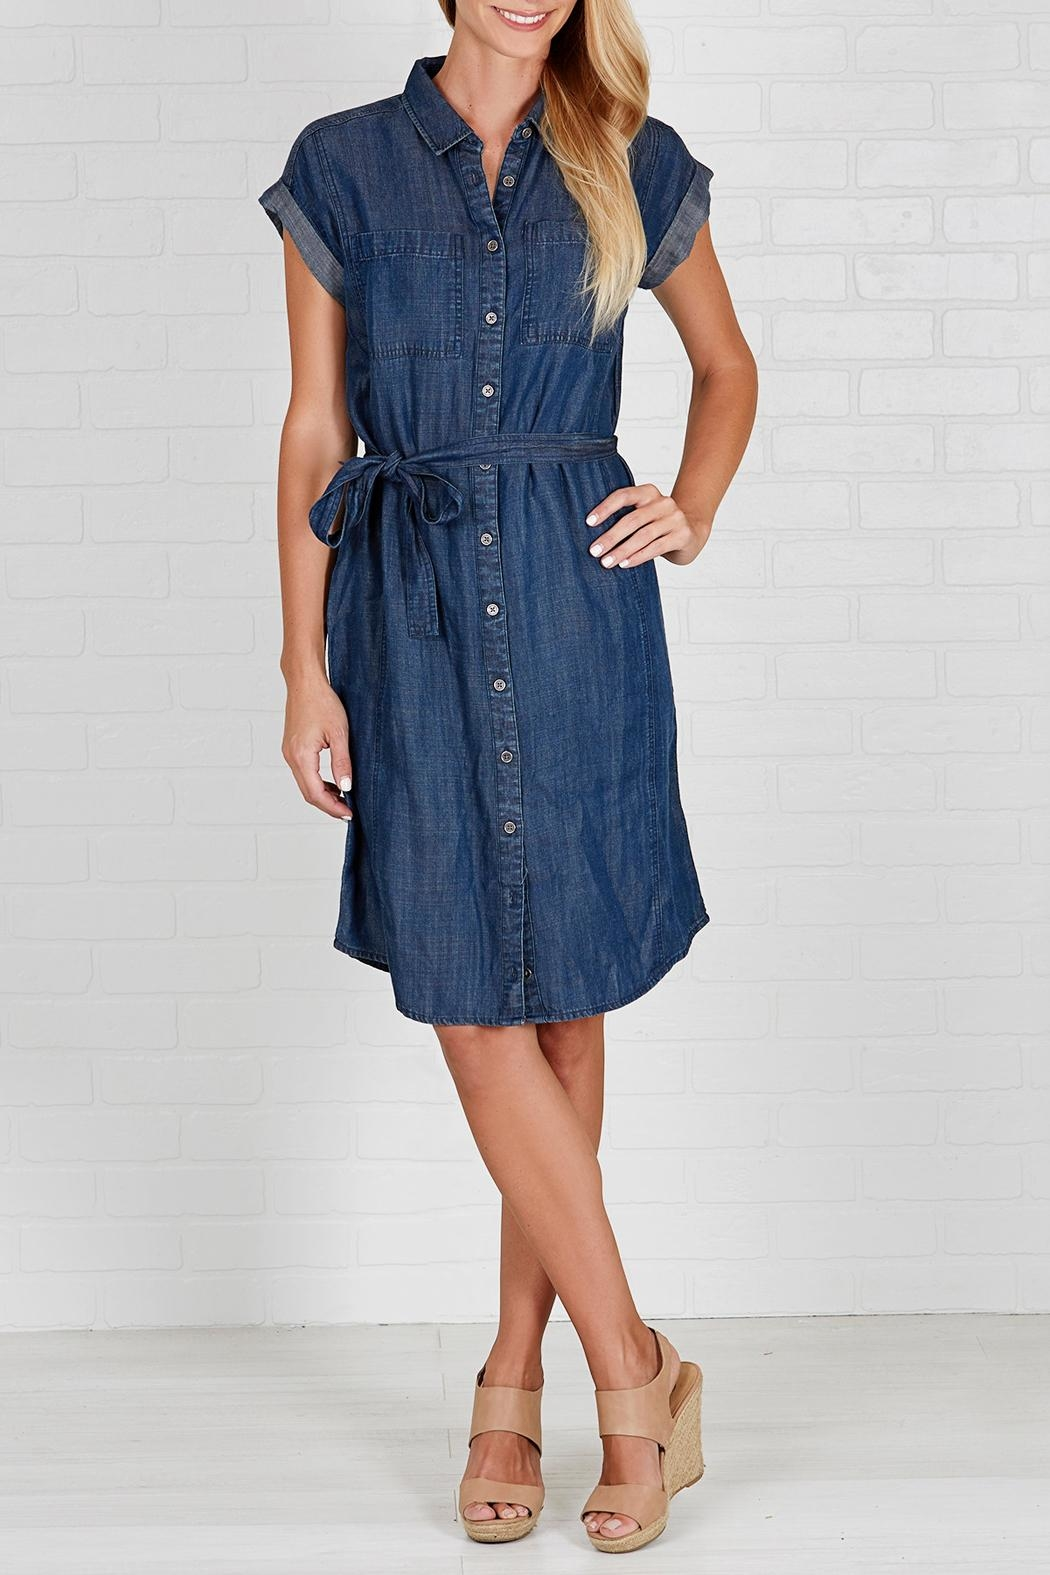 Downeast Basics Country Roads Dress - Main Image